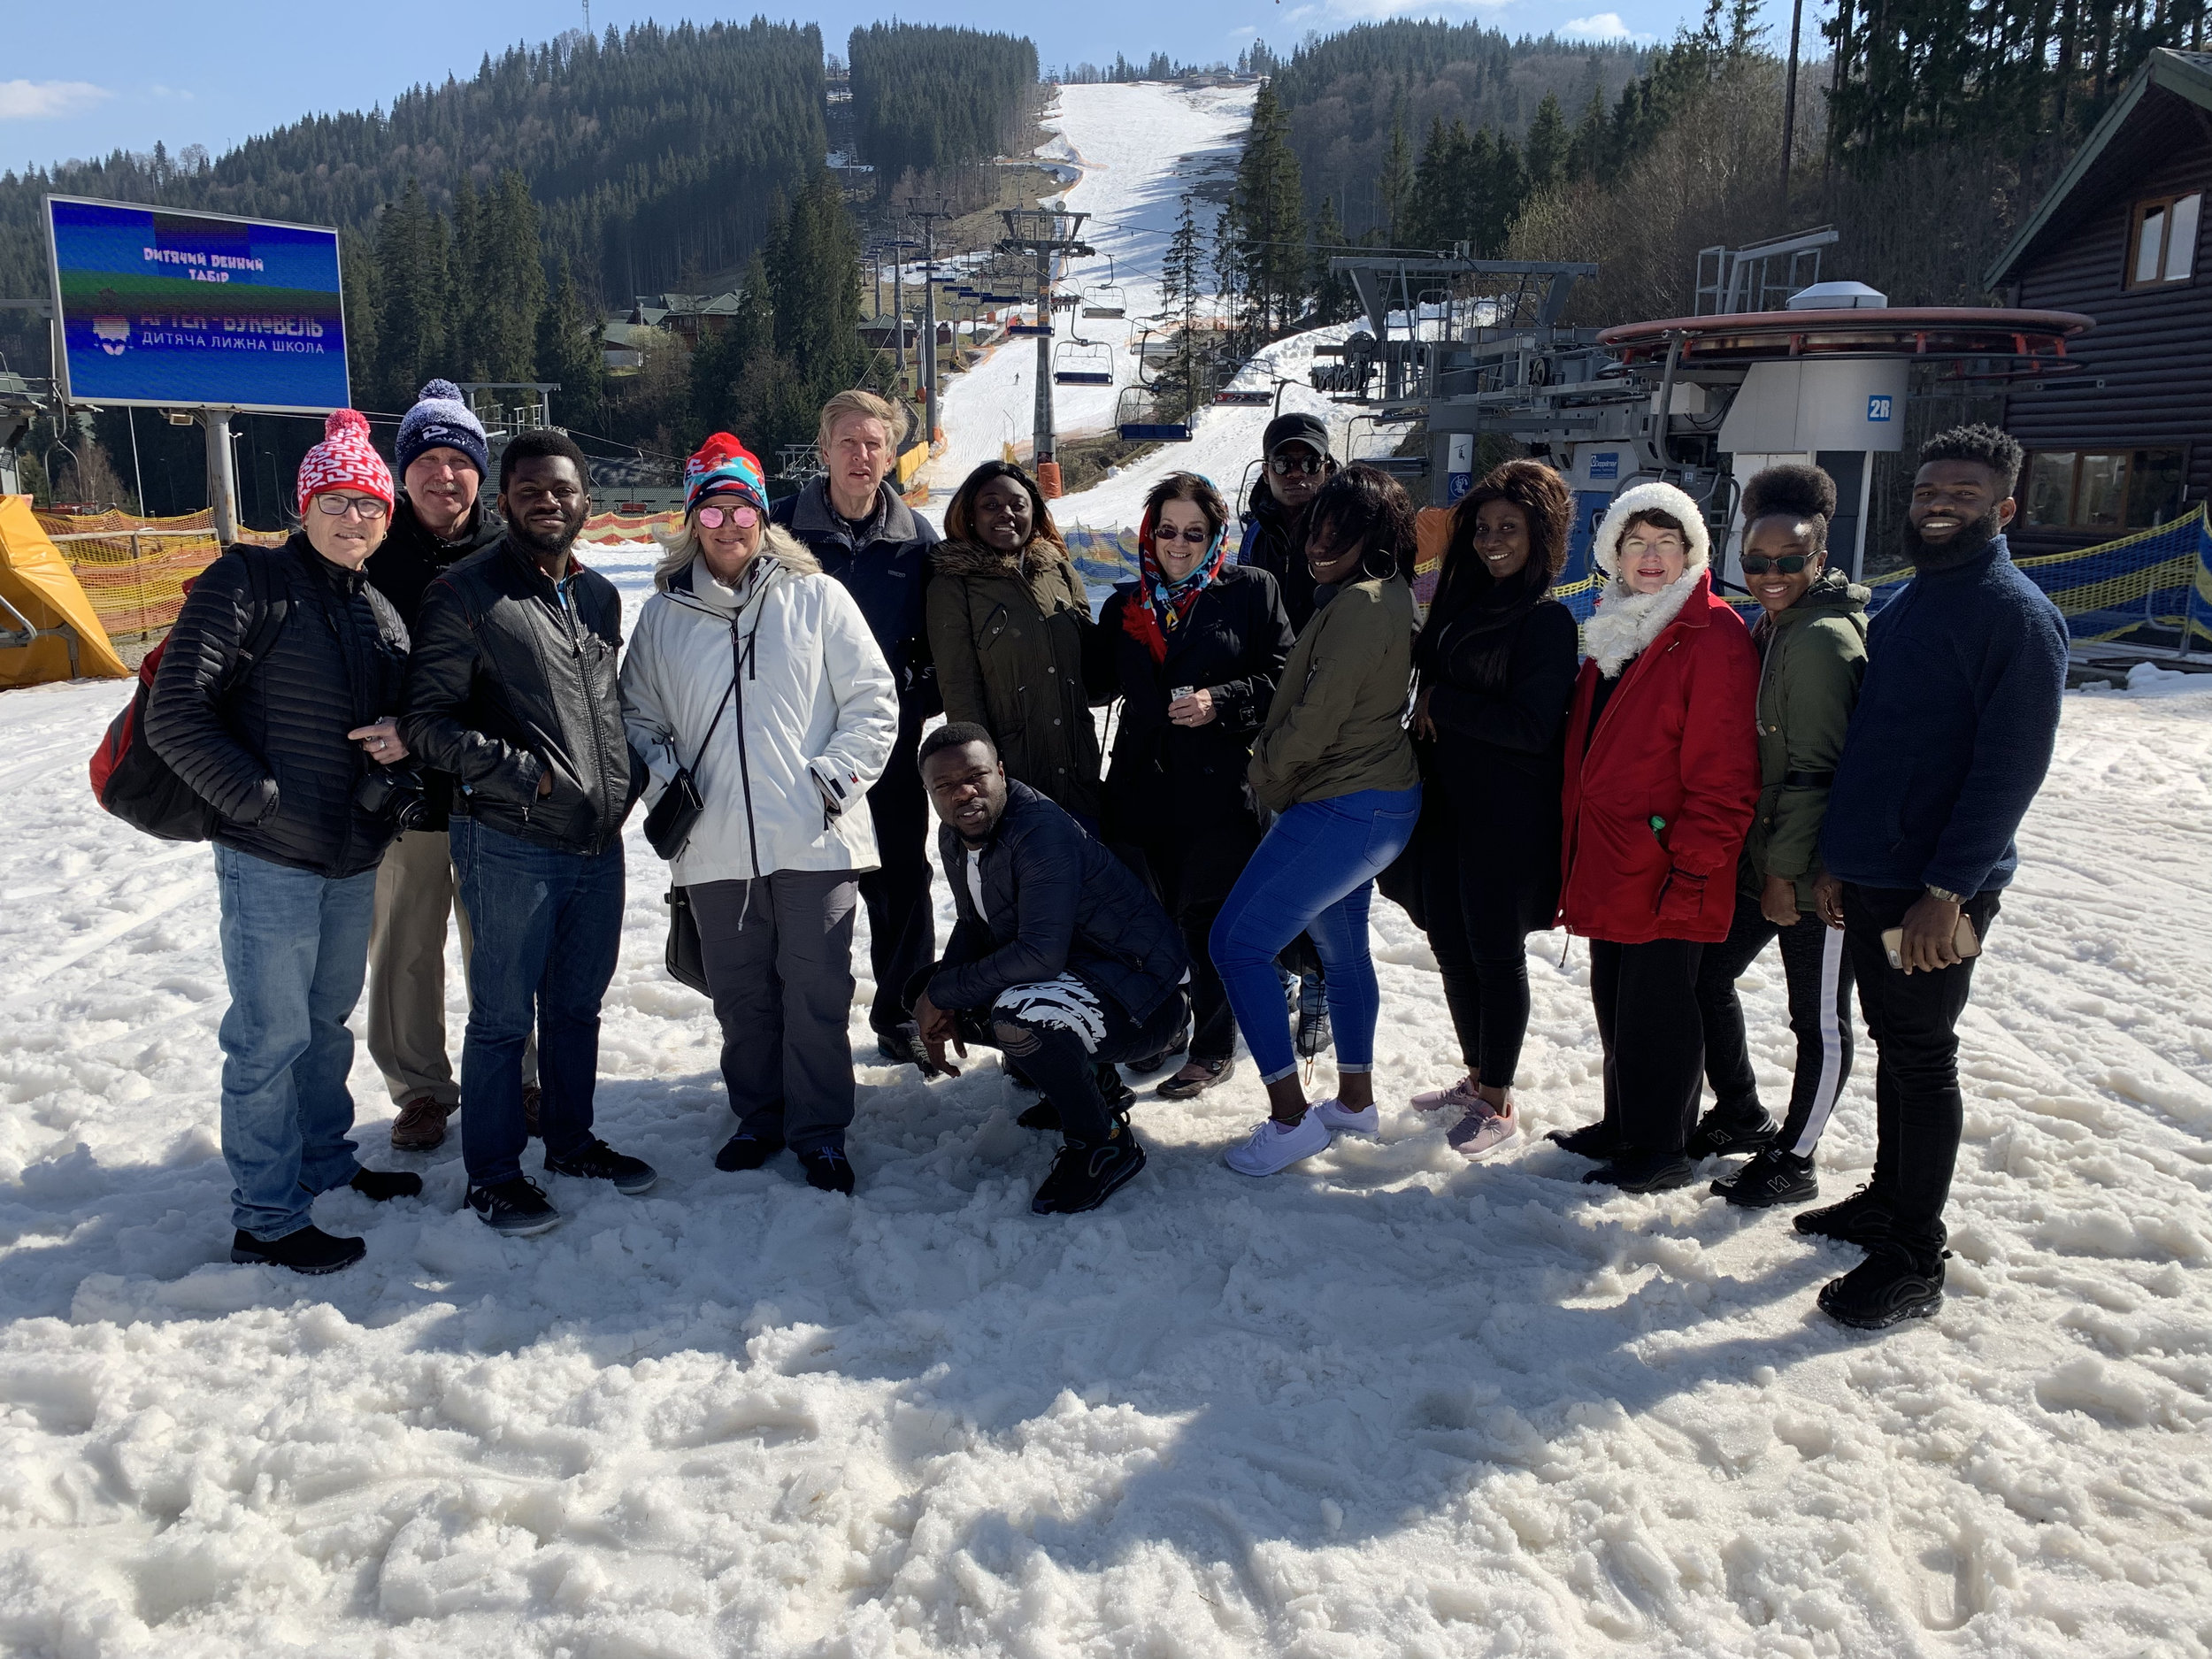 Some of us from Team USA and Team Ukraine head to the slopes. (No skiing took place.)